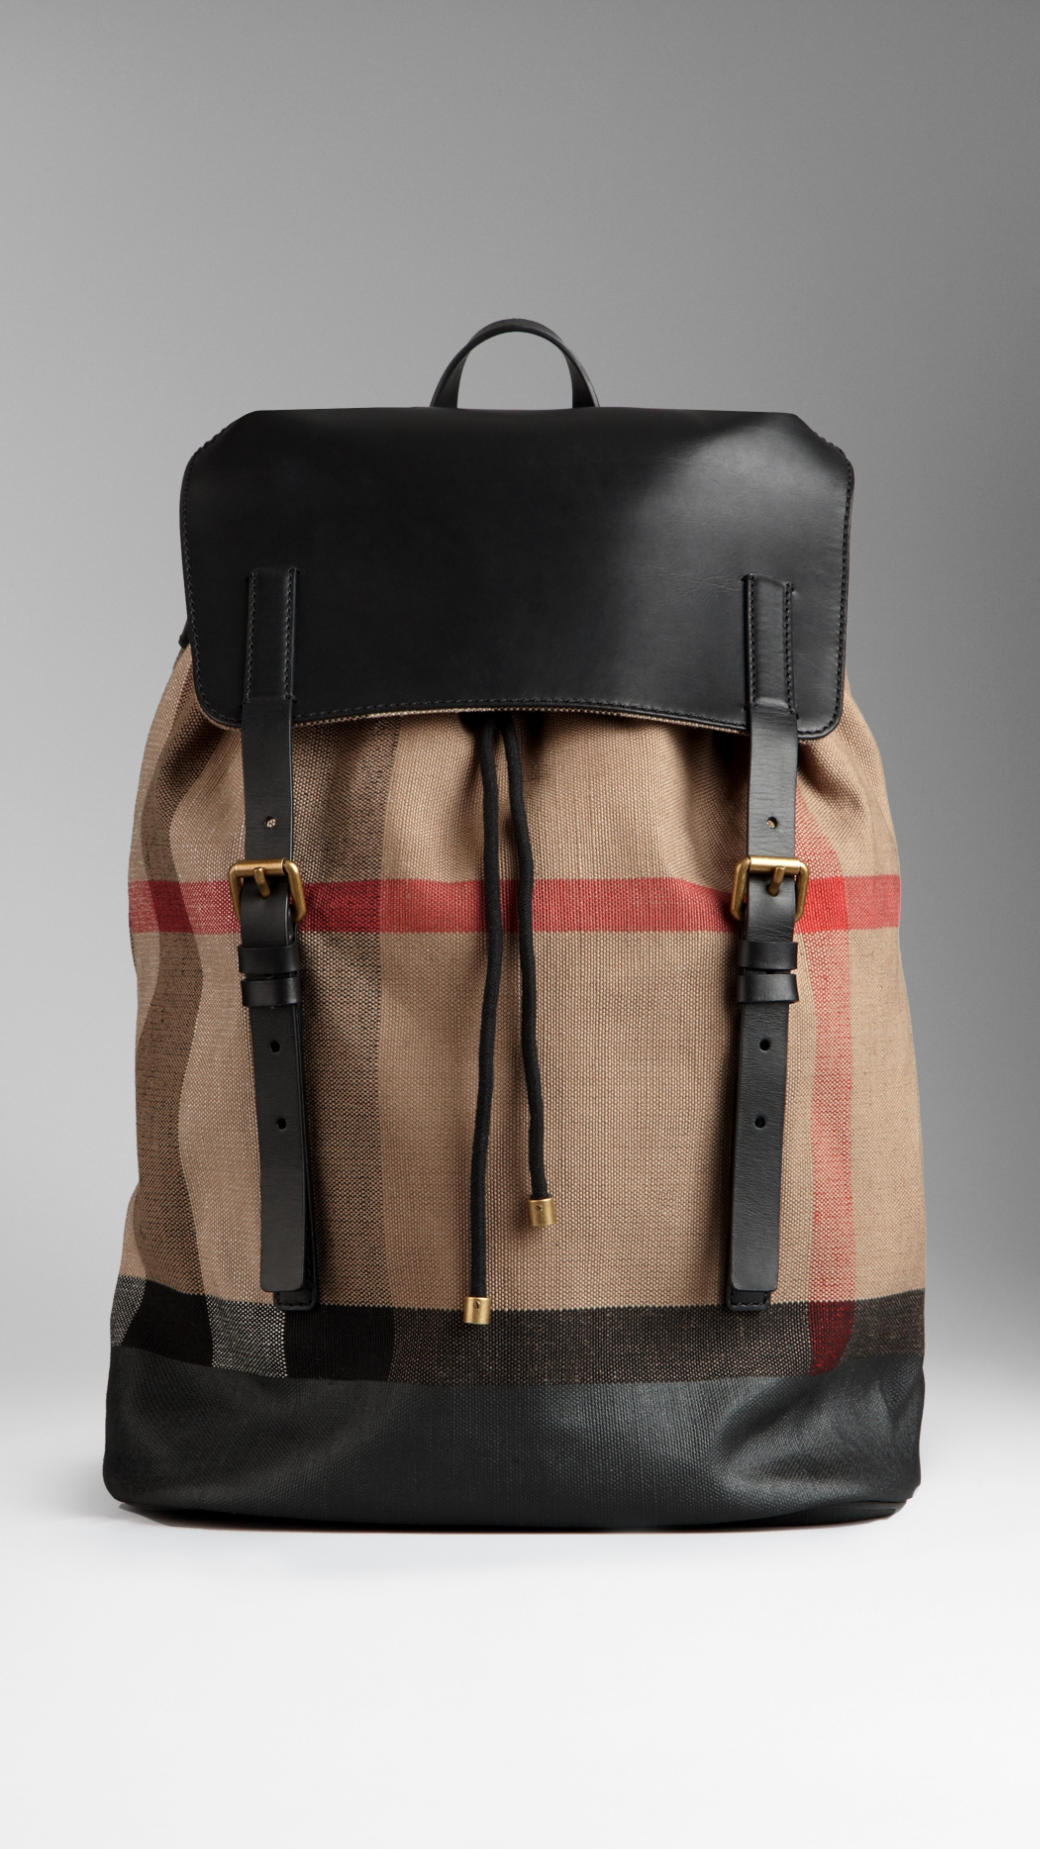 Lyst - Burberry Check Canvas Backpack in Natural for Men